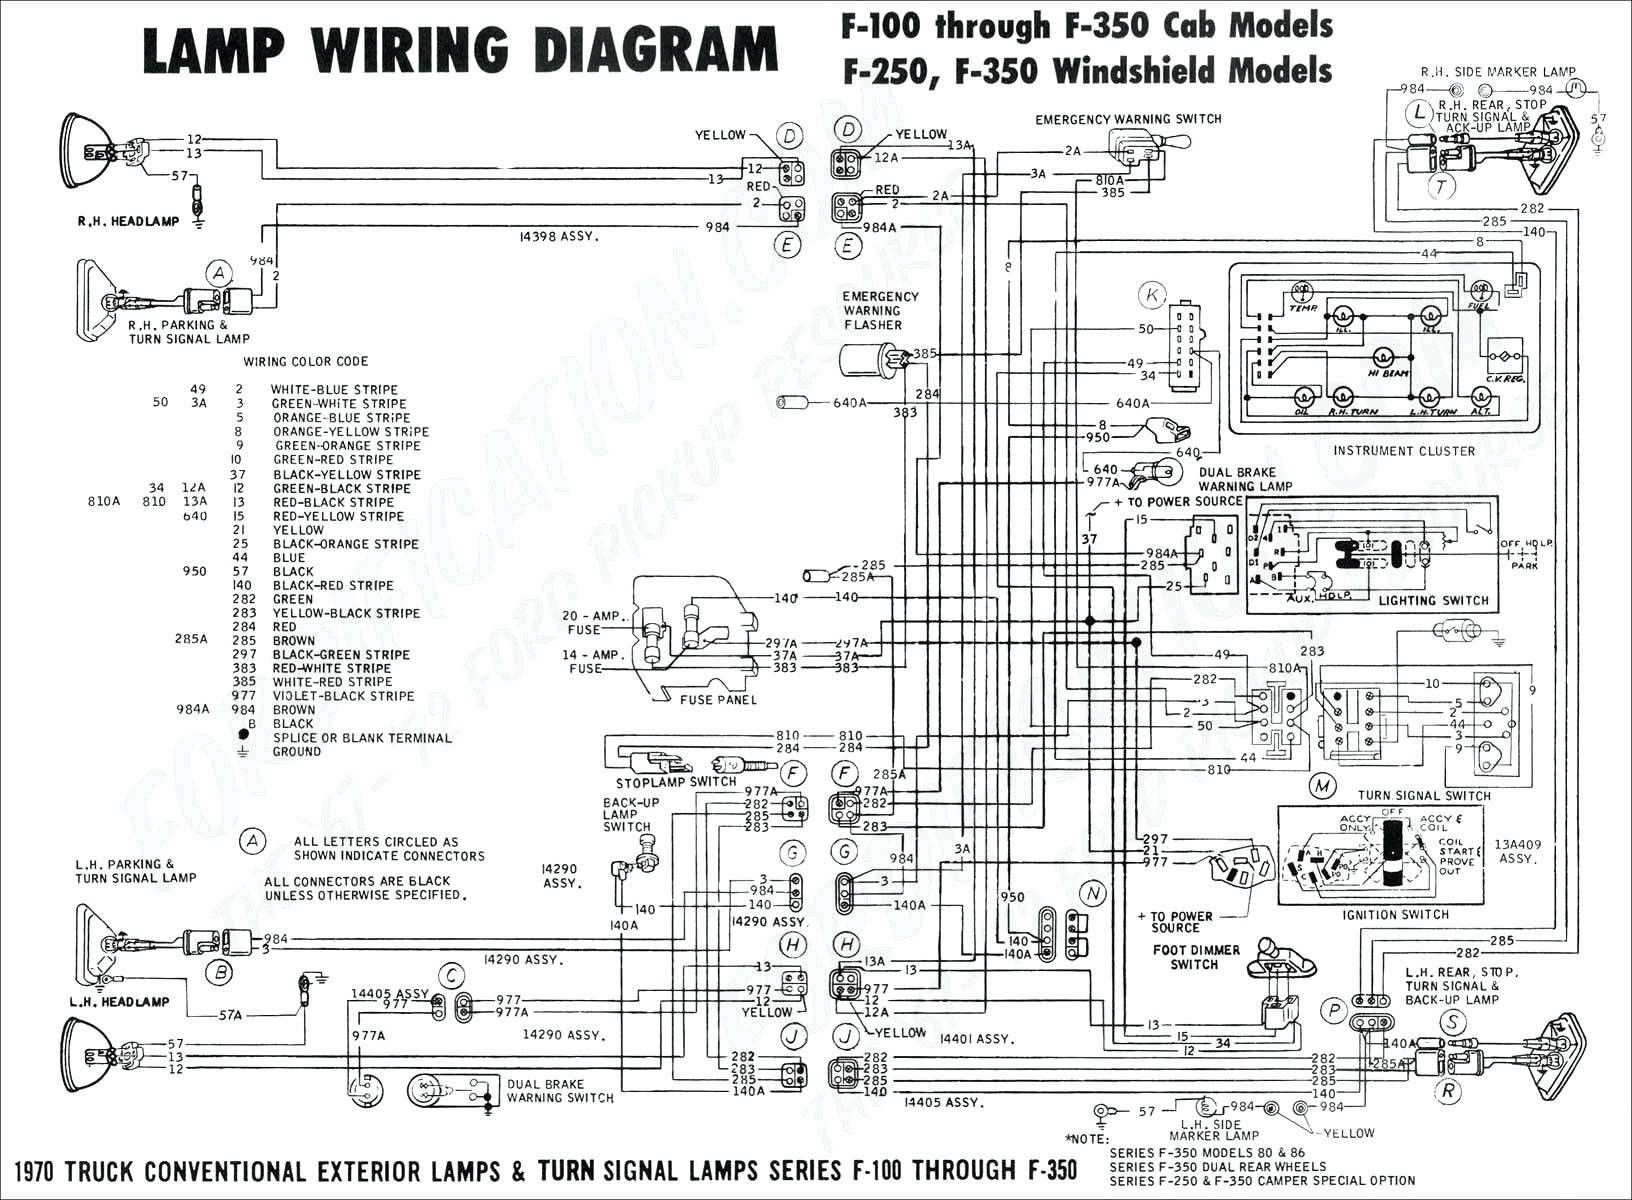 2005 Ford F150 Trailer Wiring Diagram Collection In 2020